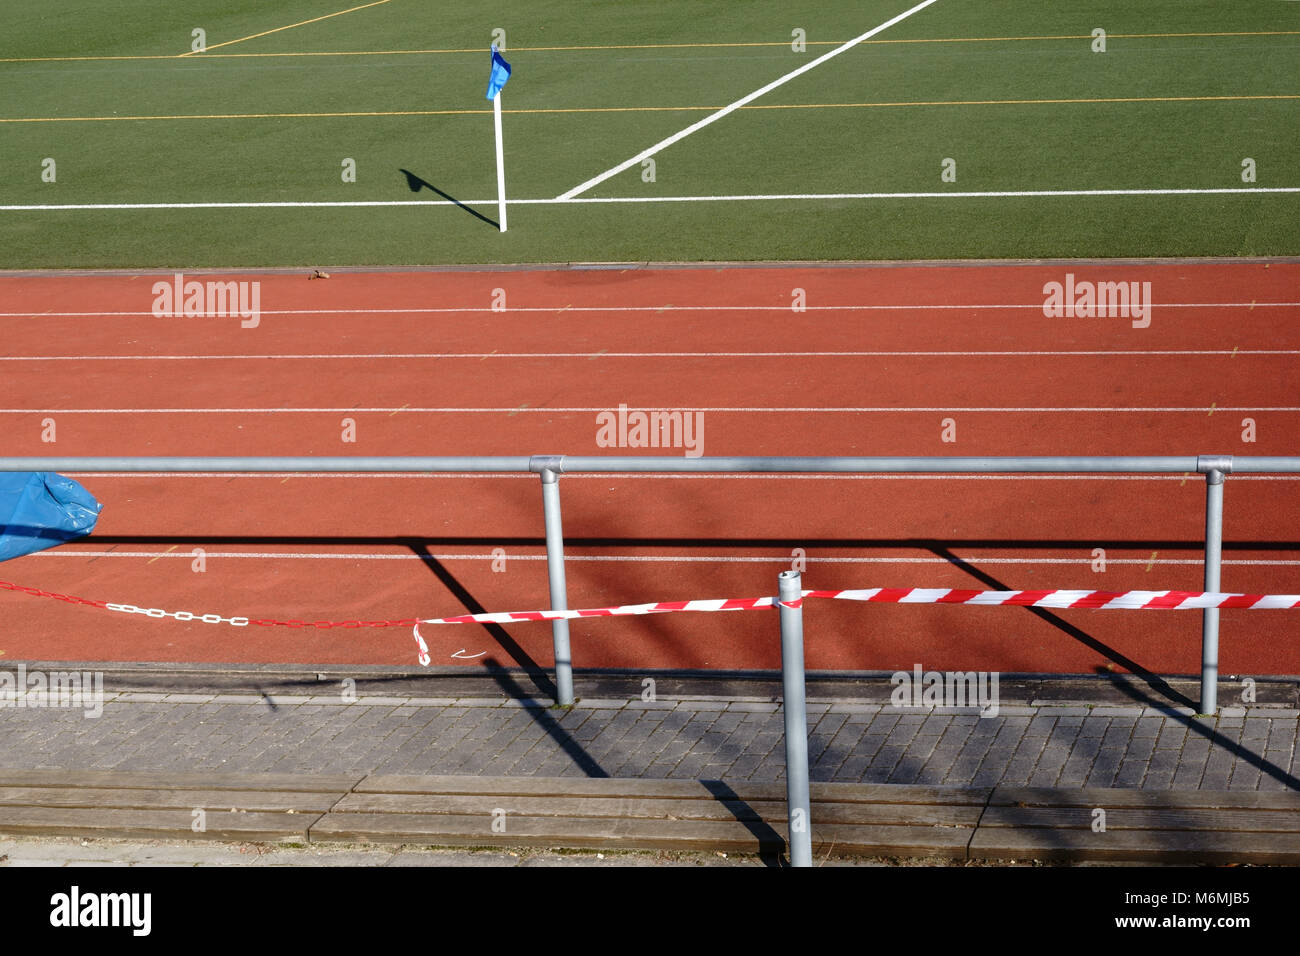 The green lawn surface of a soccer field with the side line and the center line behind a barrier. - Stock Image